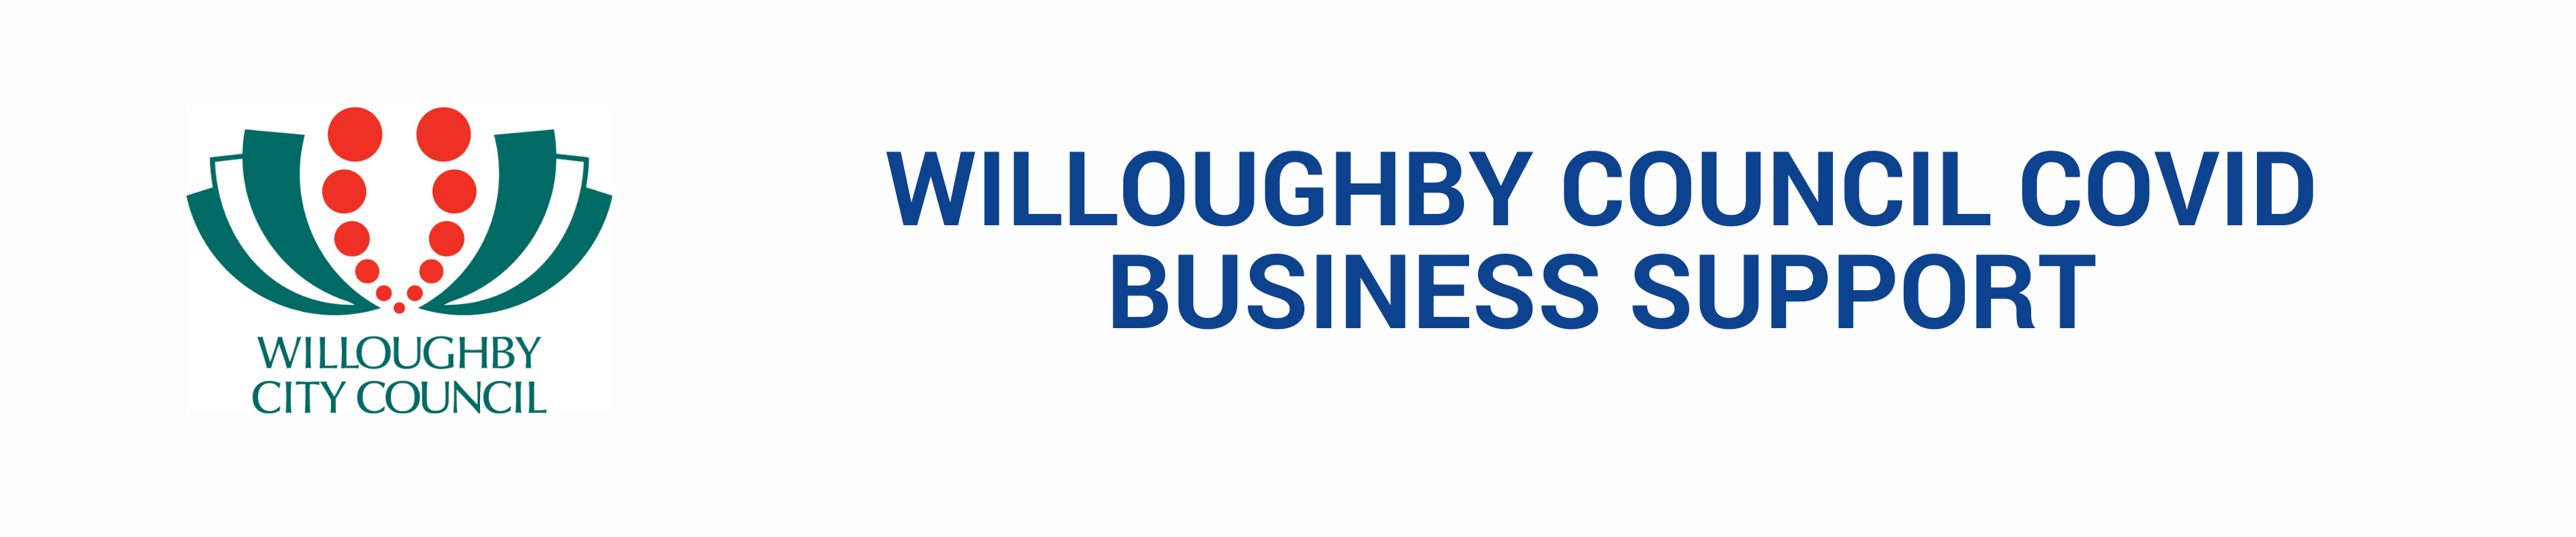 Willoughby Council Covid Relief for Local Businesses